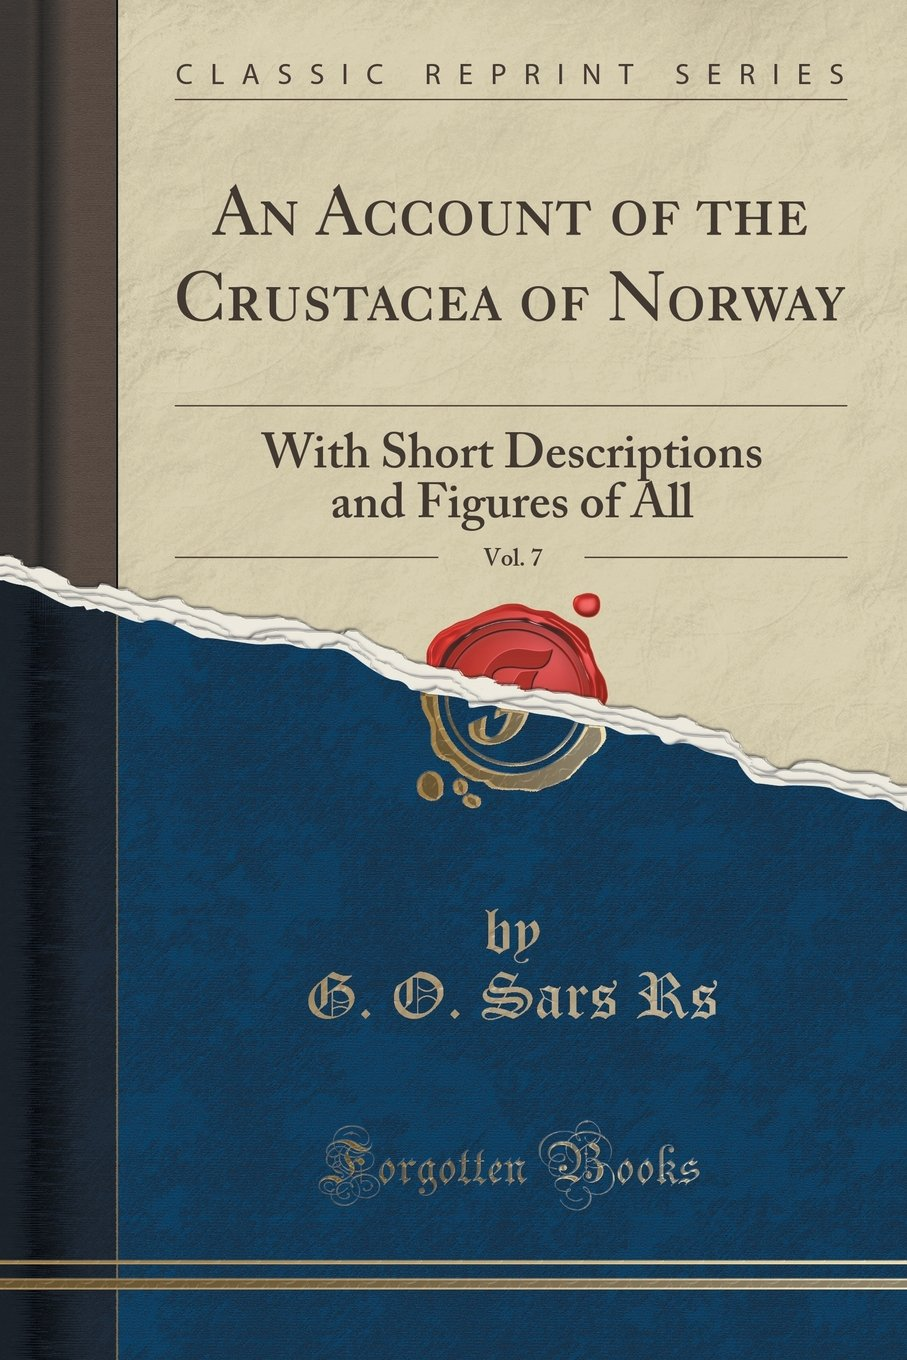 Download An Account of the Crustacea of Norway, Vol. 7: With Short Descriptions and Figures of All (Classic Reprint) ebook